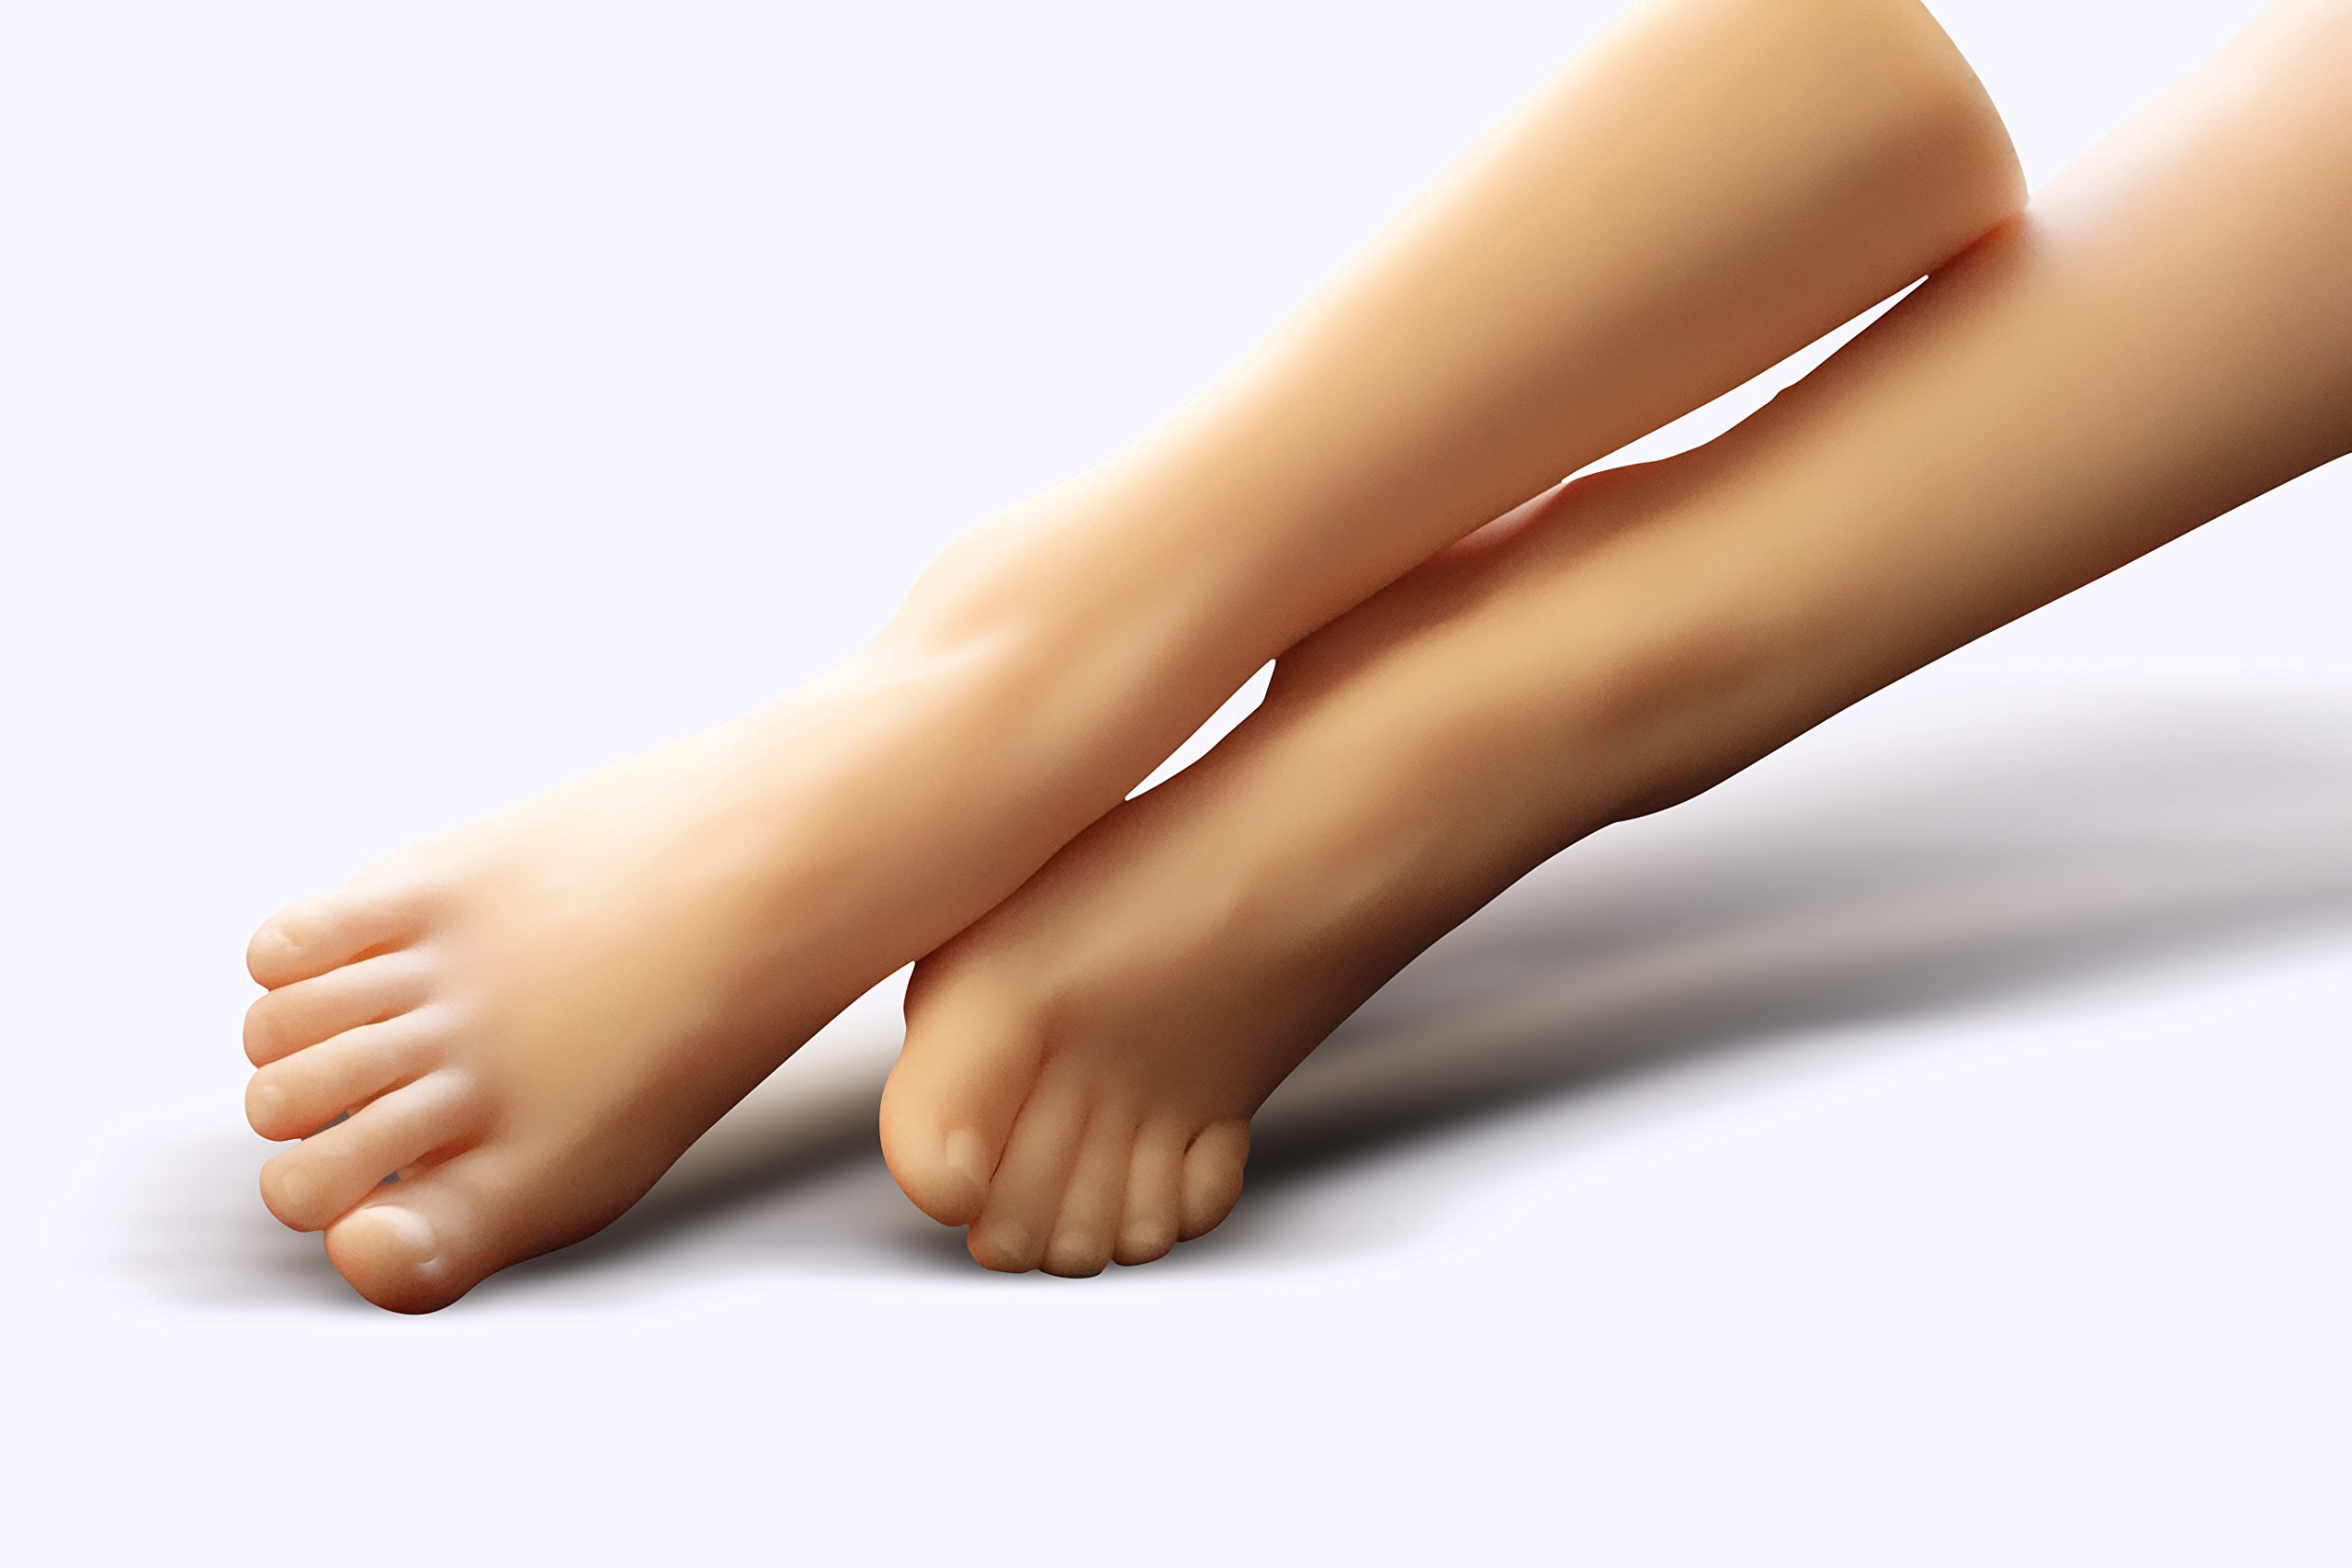 Foot model Real Scale Super Realistic Foot Mask Photography Store Product Exhibition Teaching Appliance Design Exercise Model Manicure Exercise etc. Widely Used